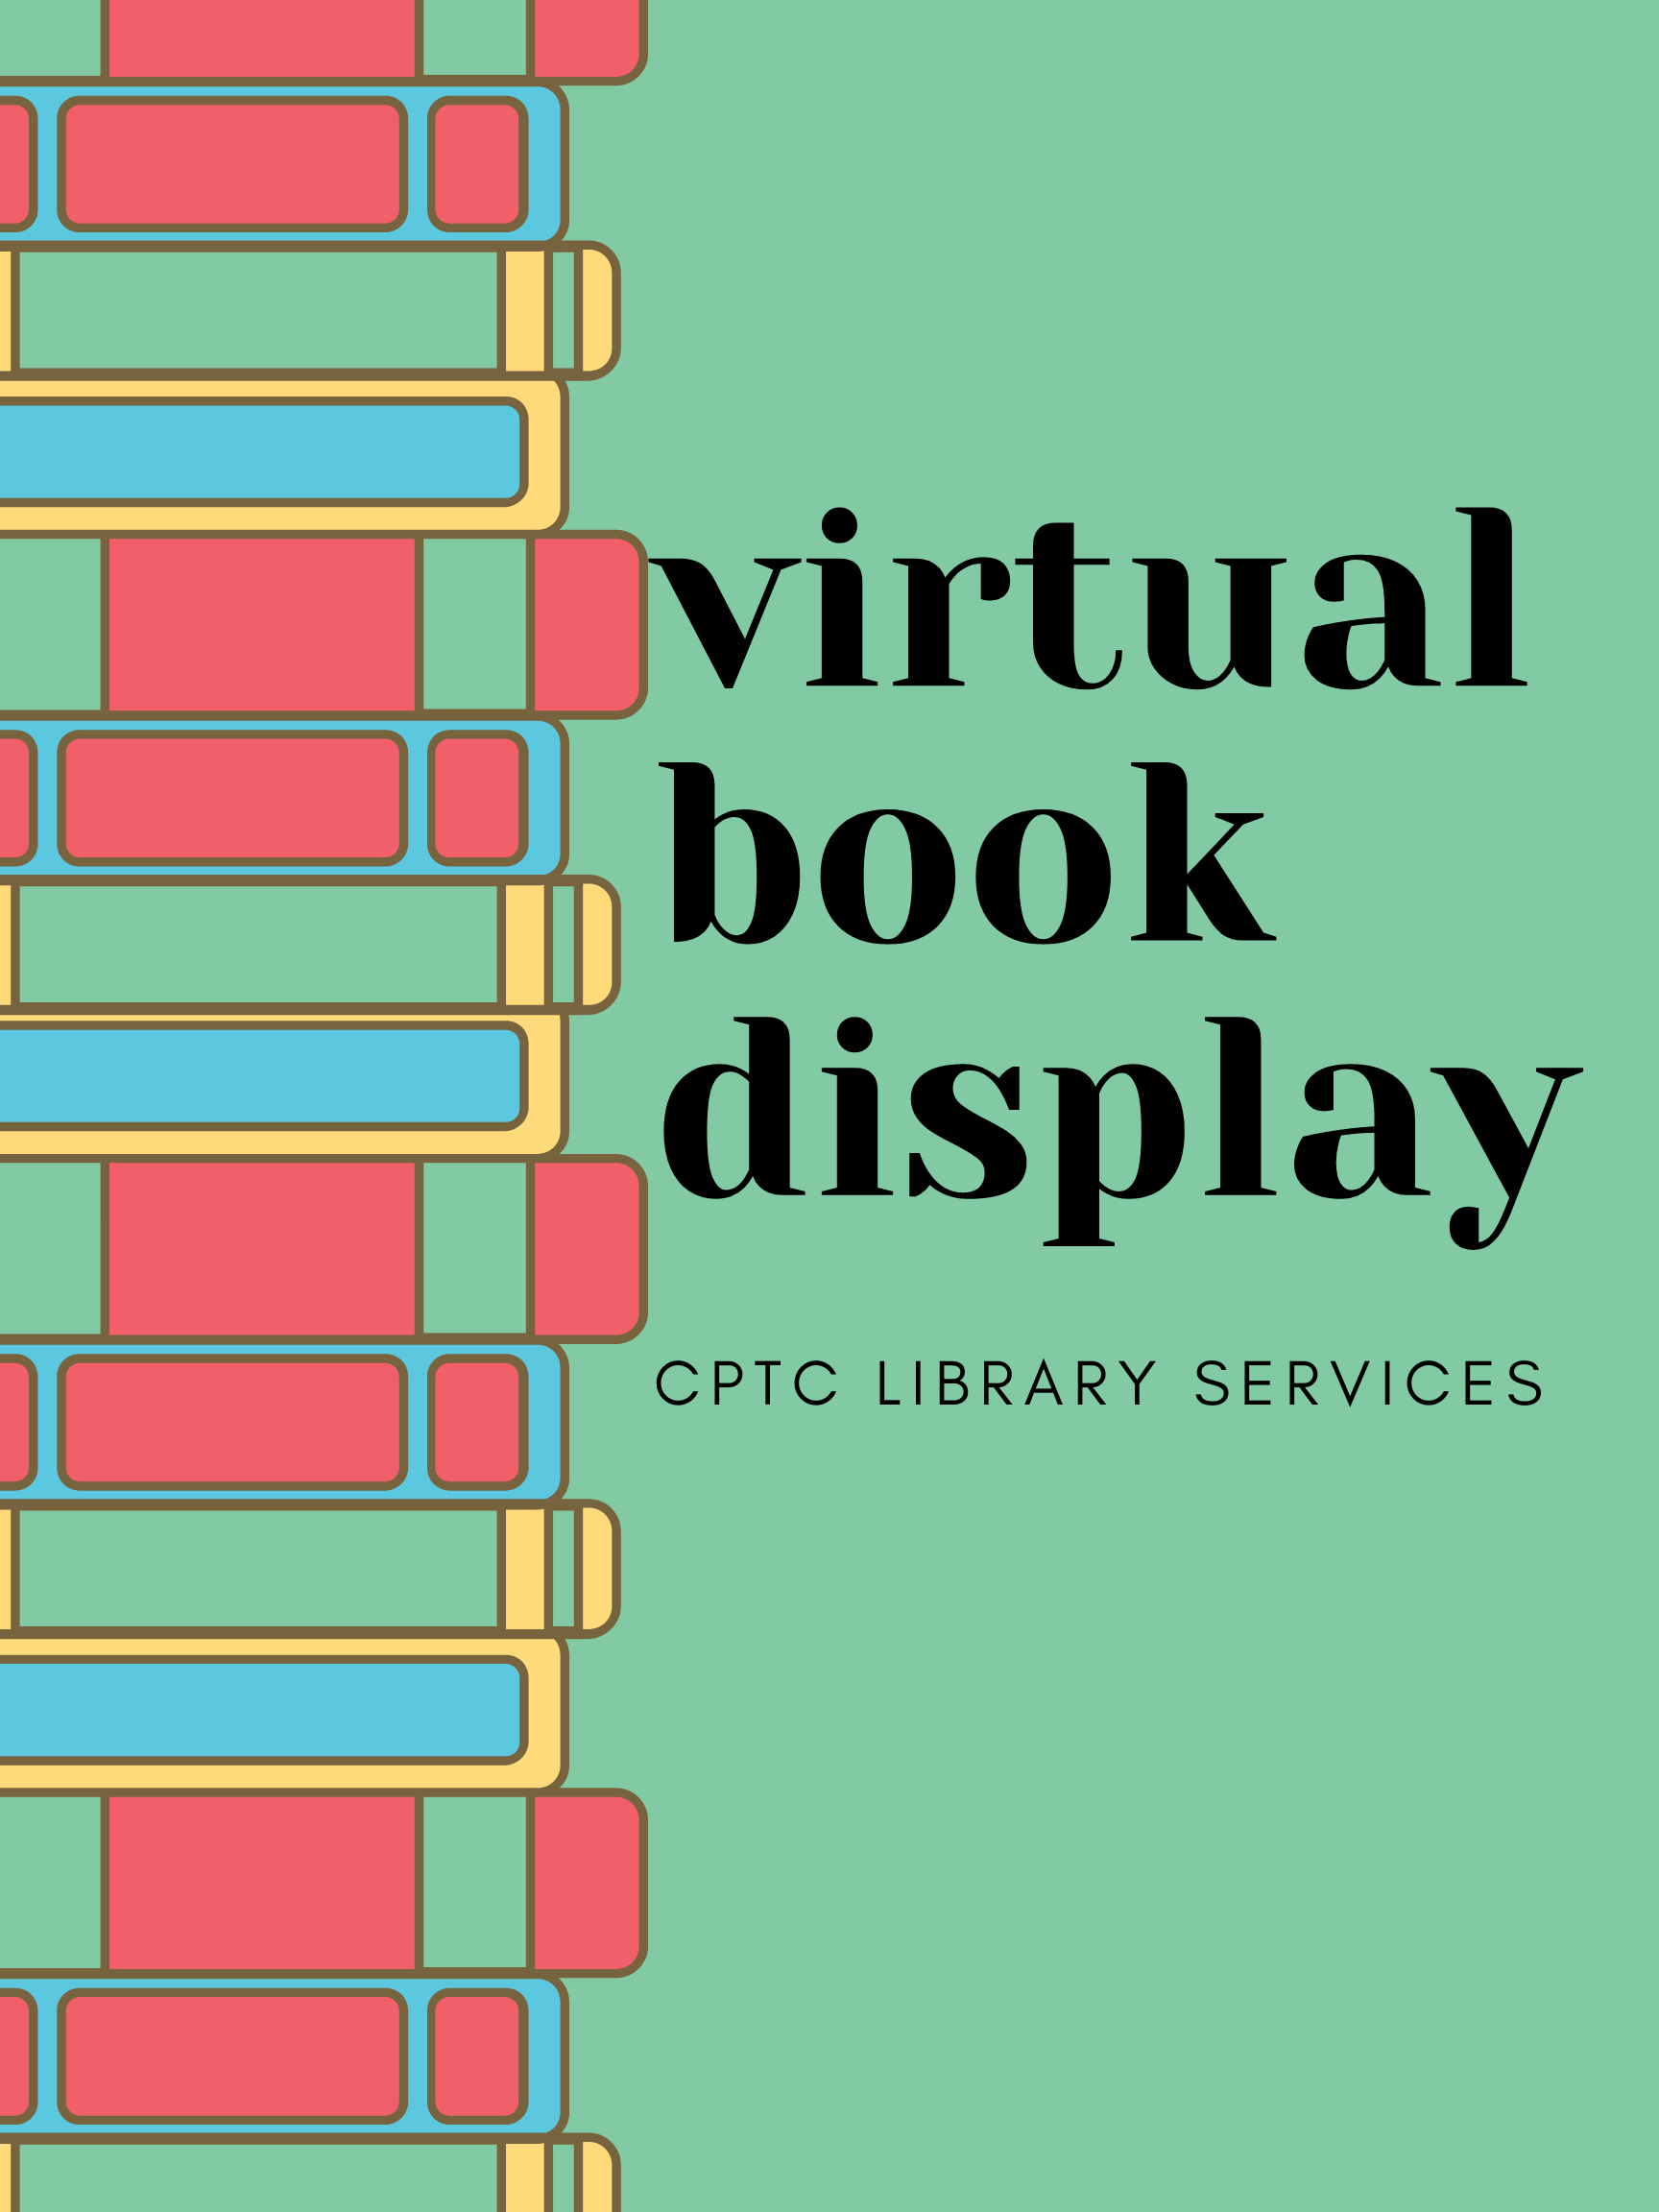 Virtual Book Display poster with a stack of books saying virtual book display